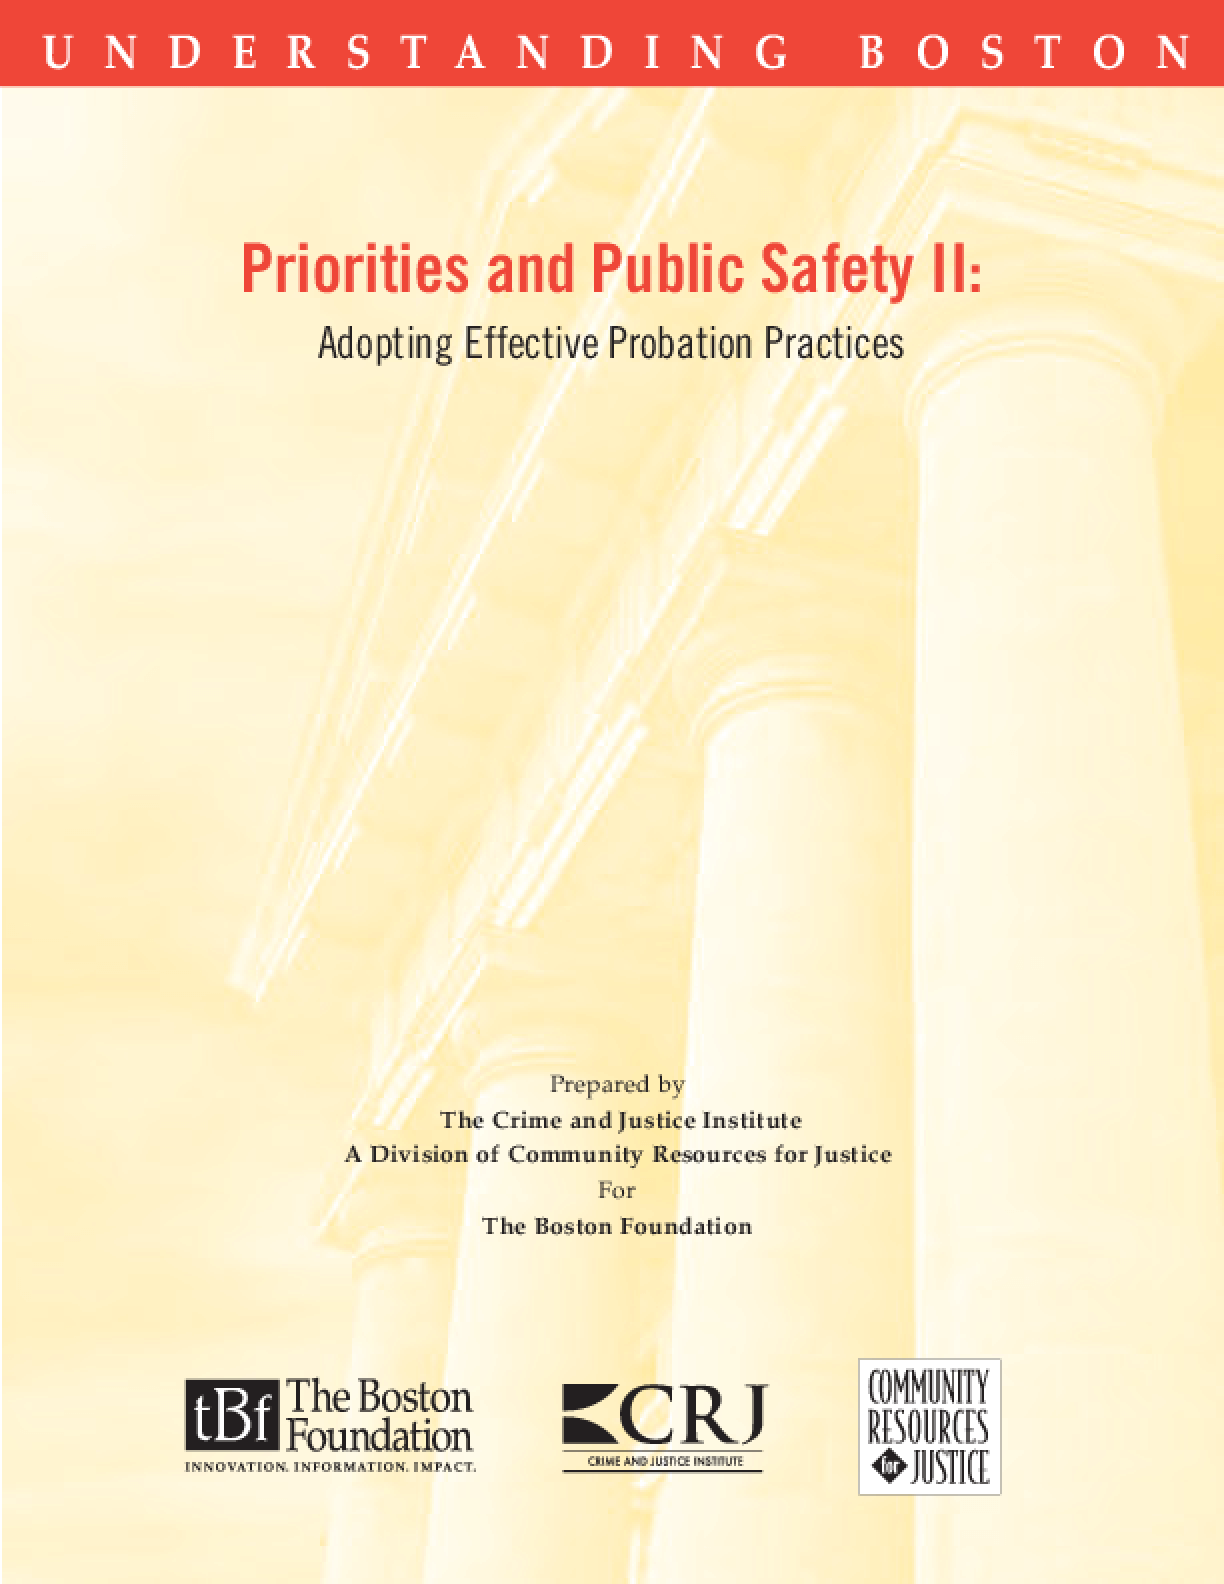 Priorities and Public Safety II: Adopting Effective Probation Practices